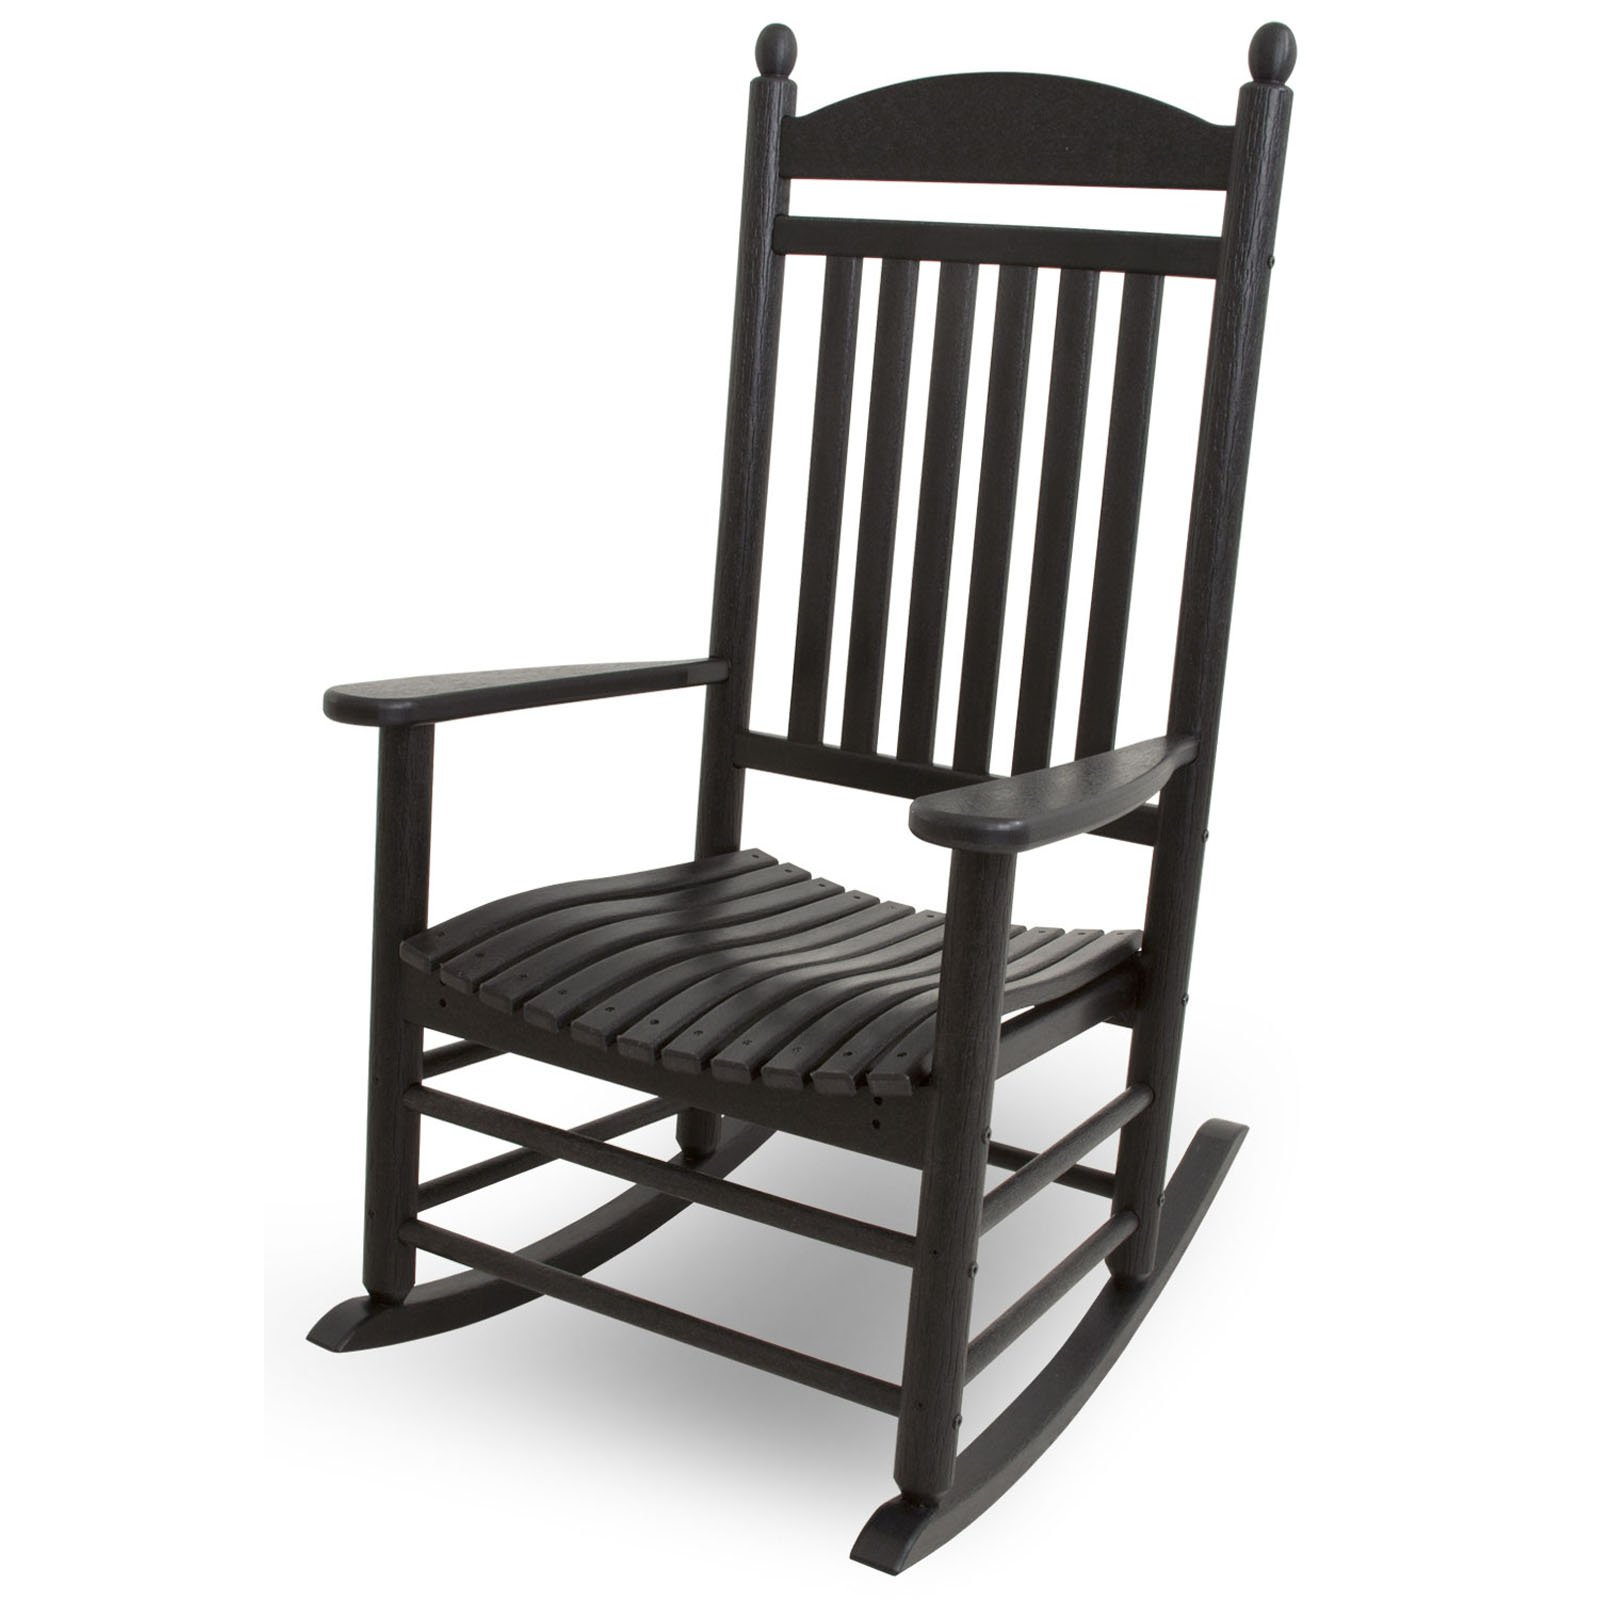 POLYWOOD® Jefferson Recycled Plastic Rocking Chair